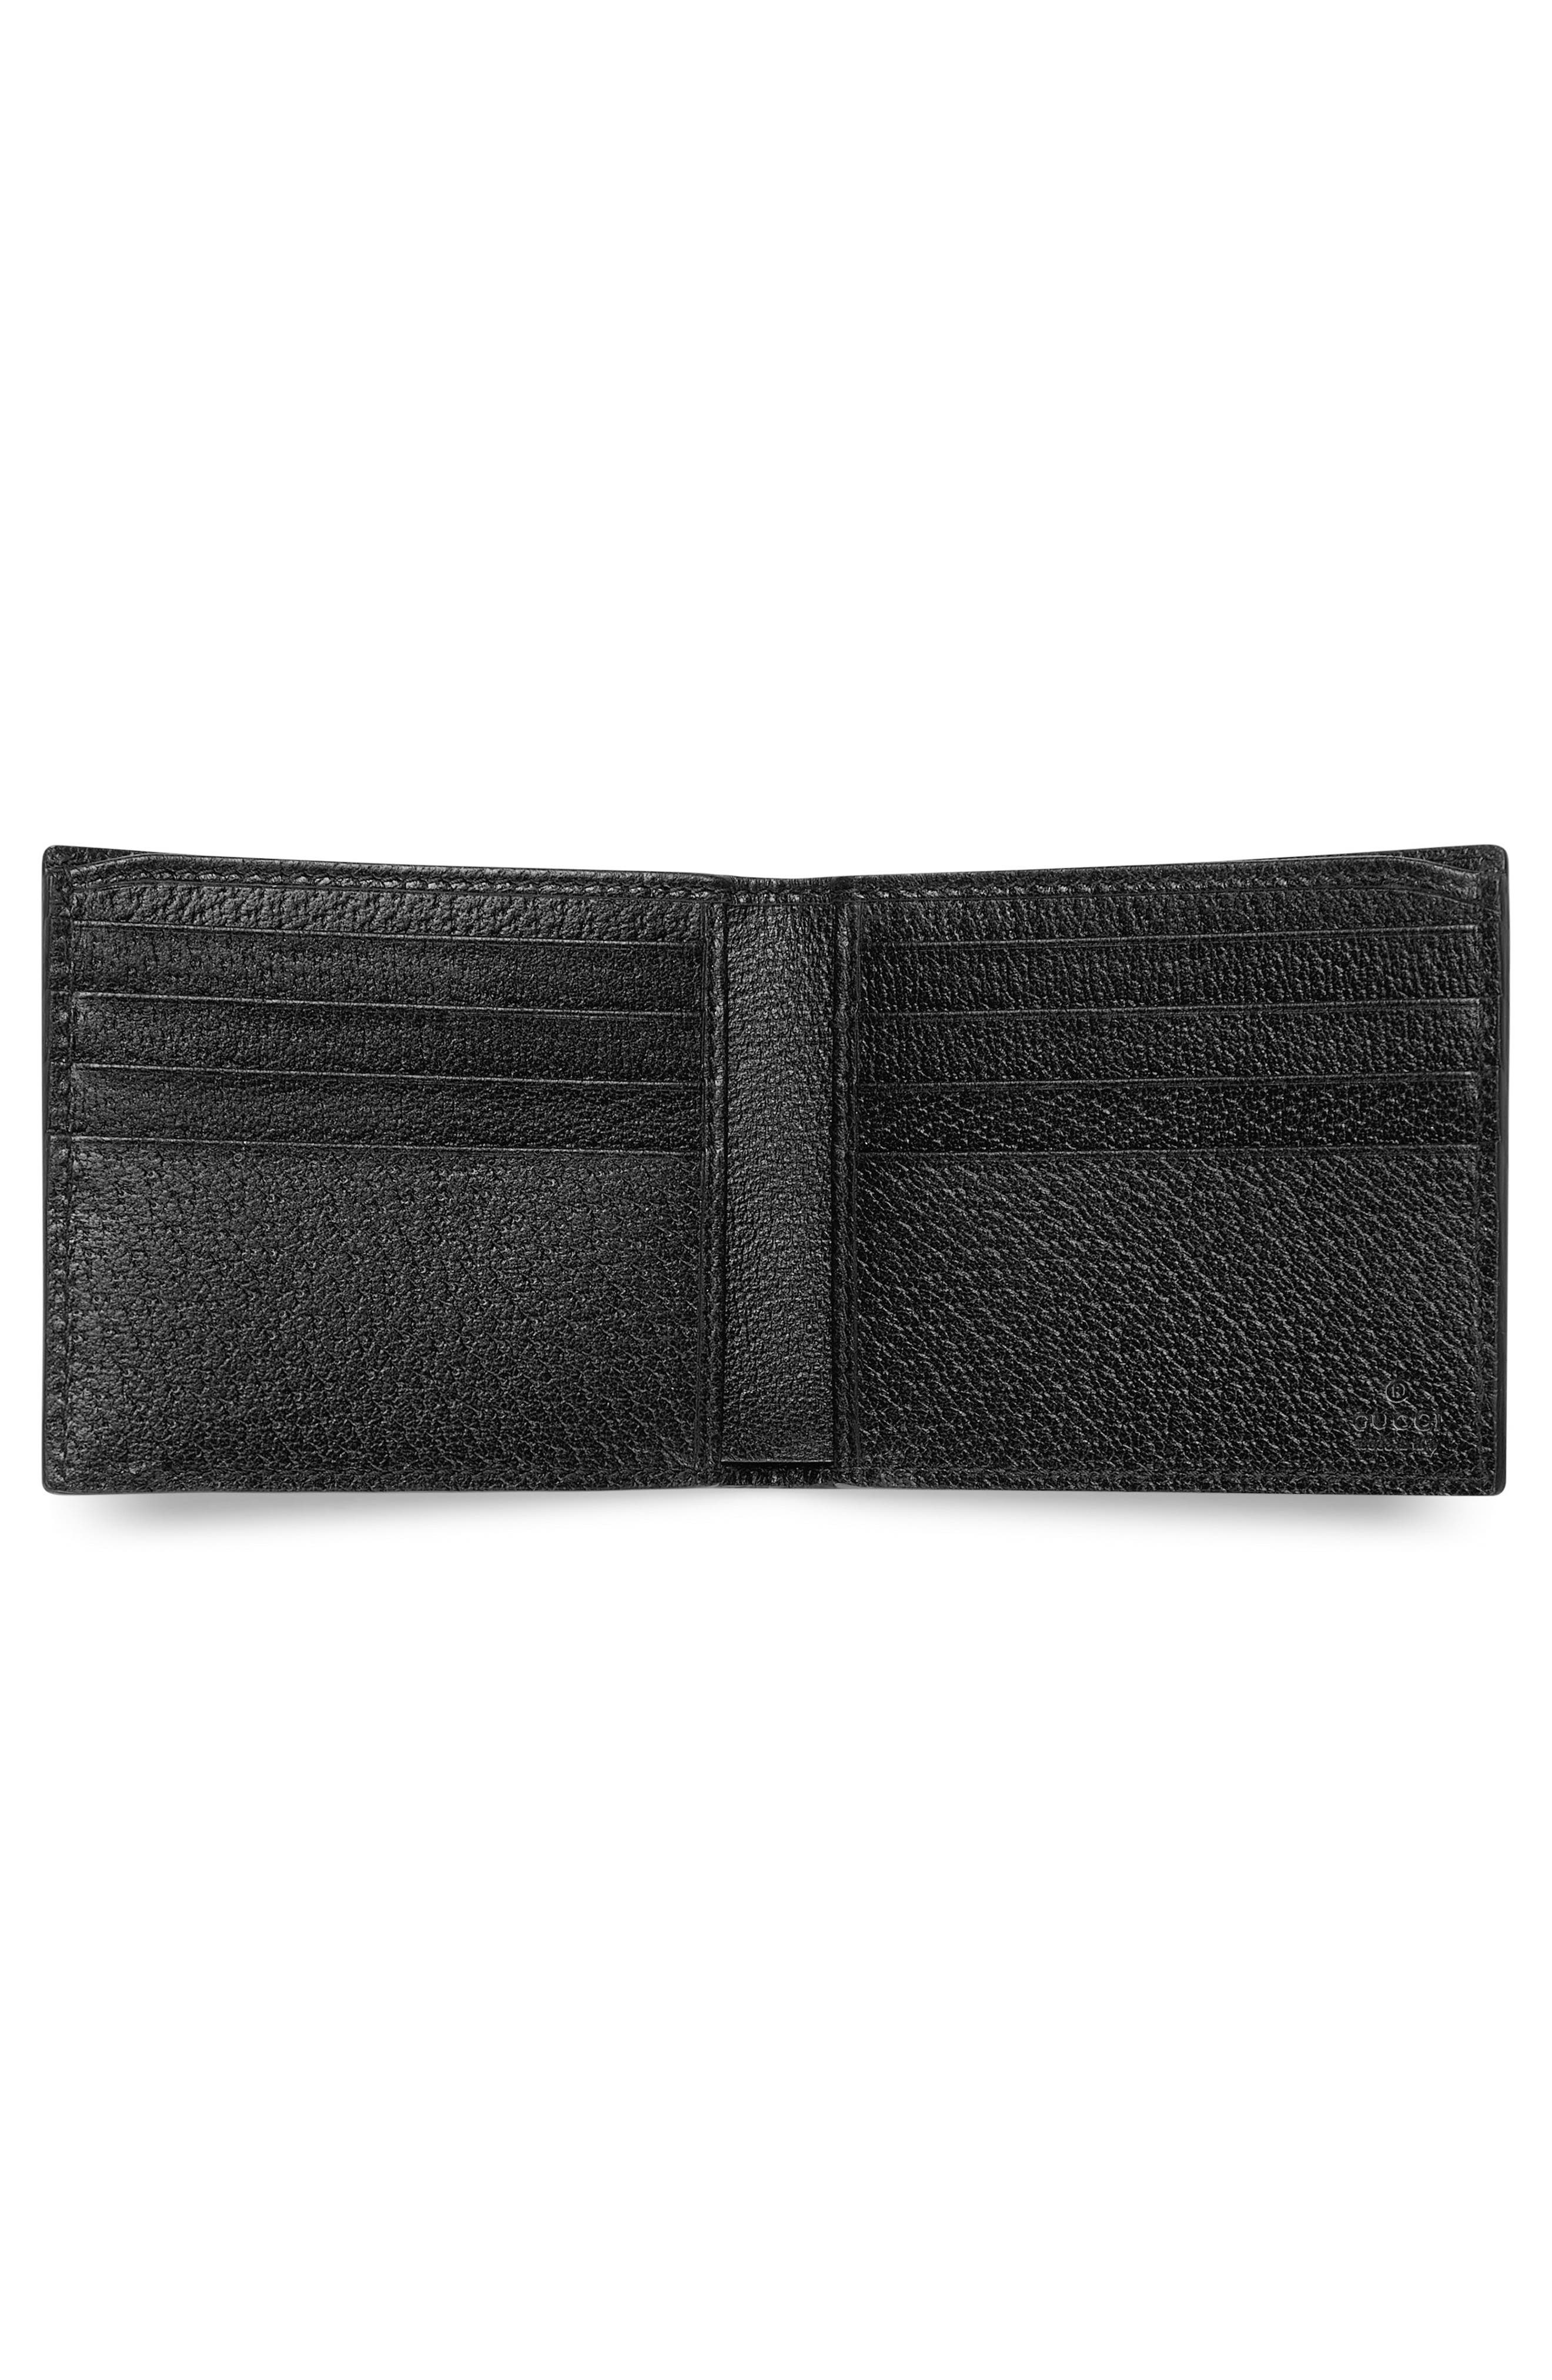 Bee Leather Wallet,                             Alternate thumbnail 2, color,                             001